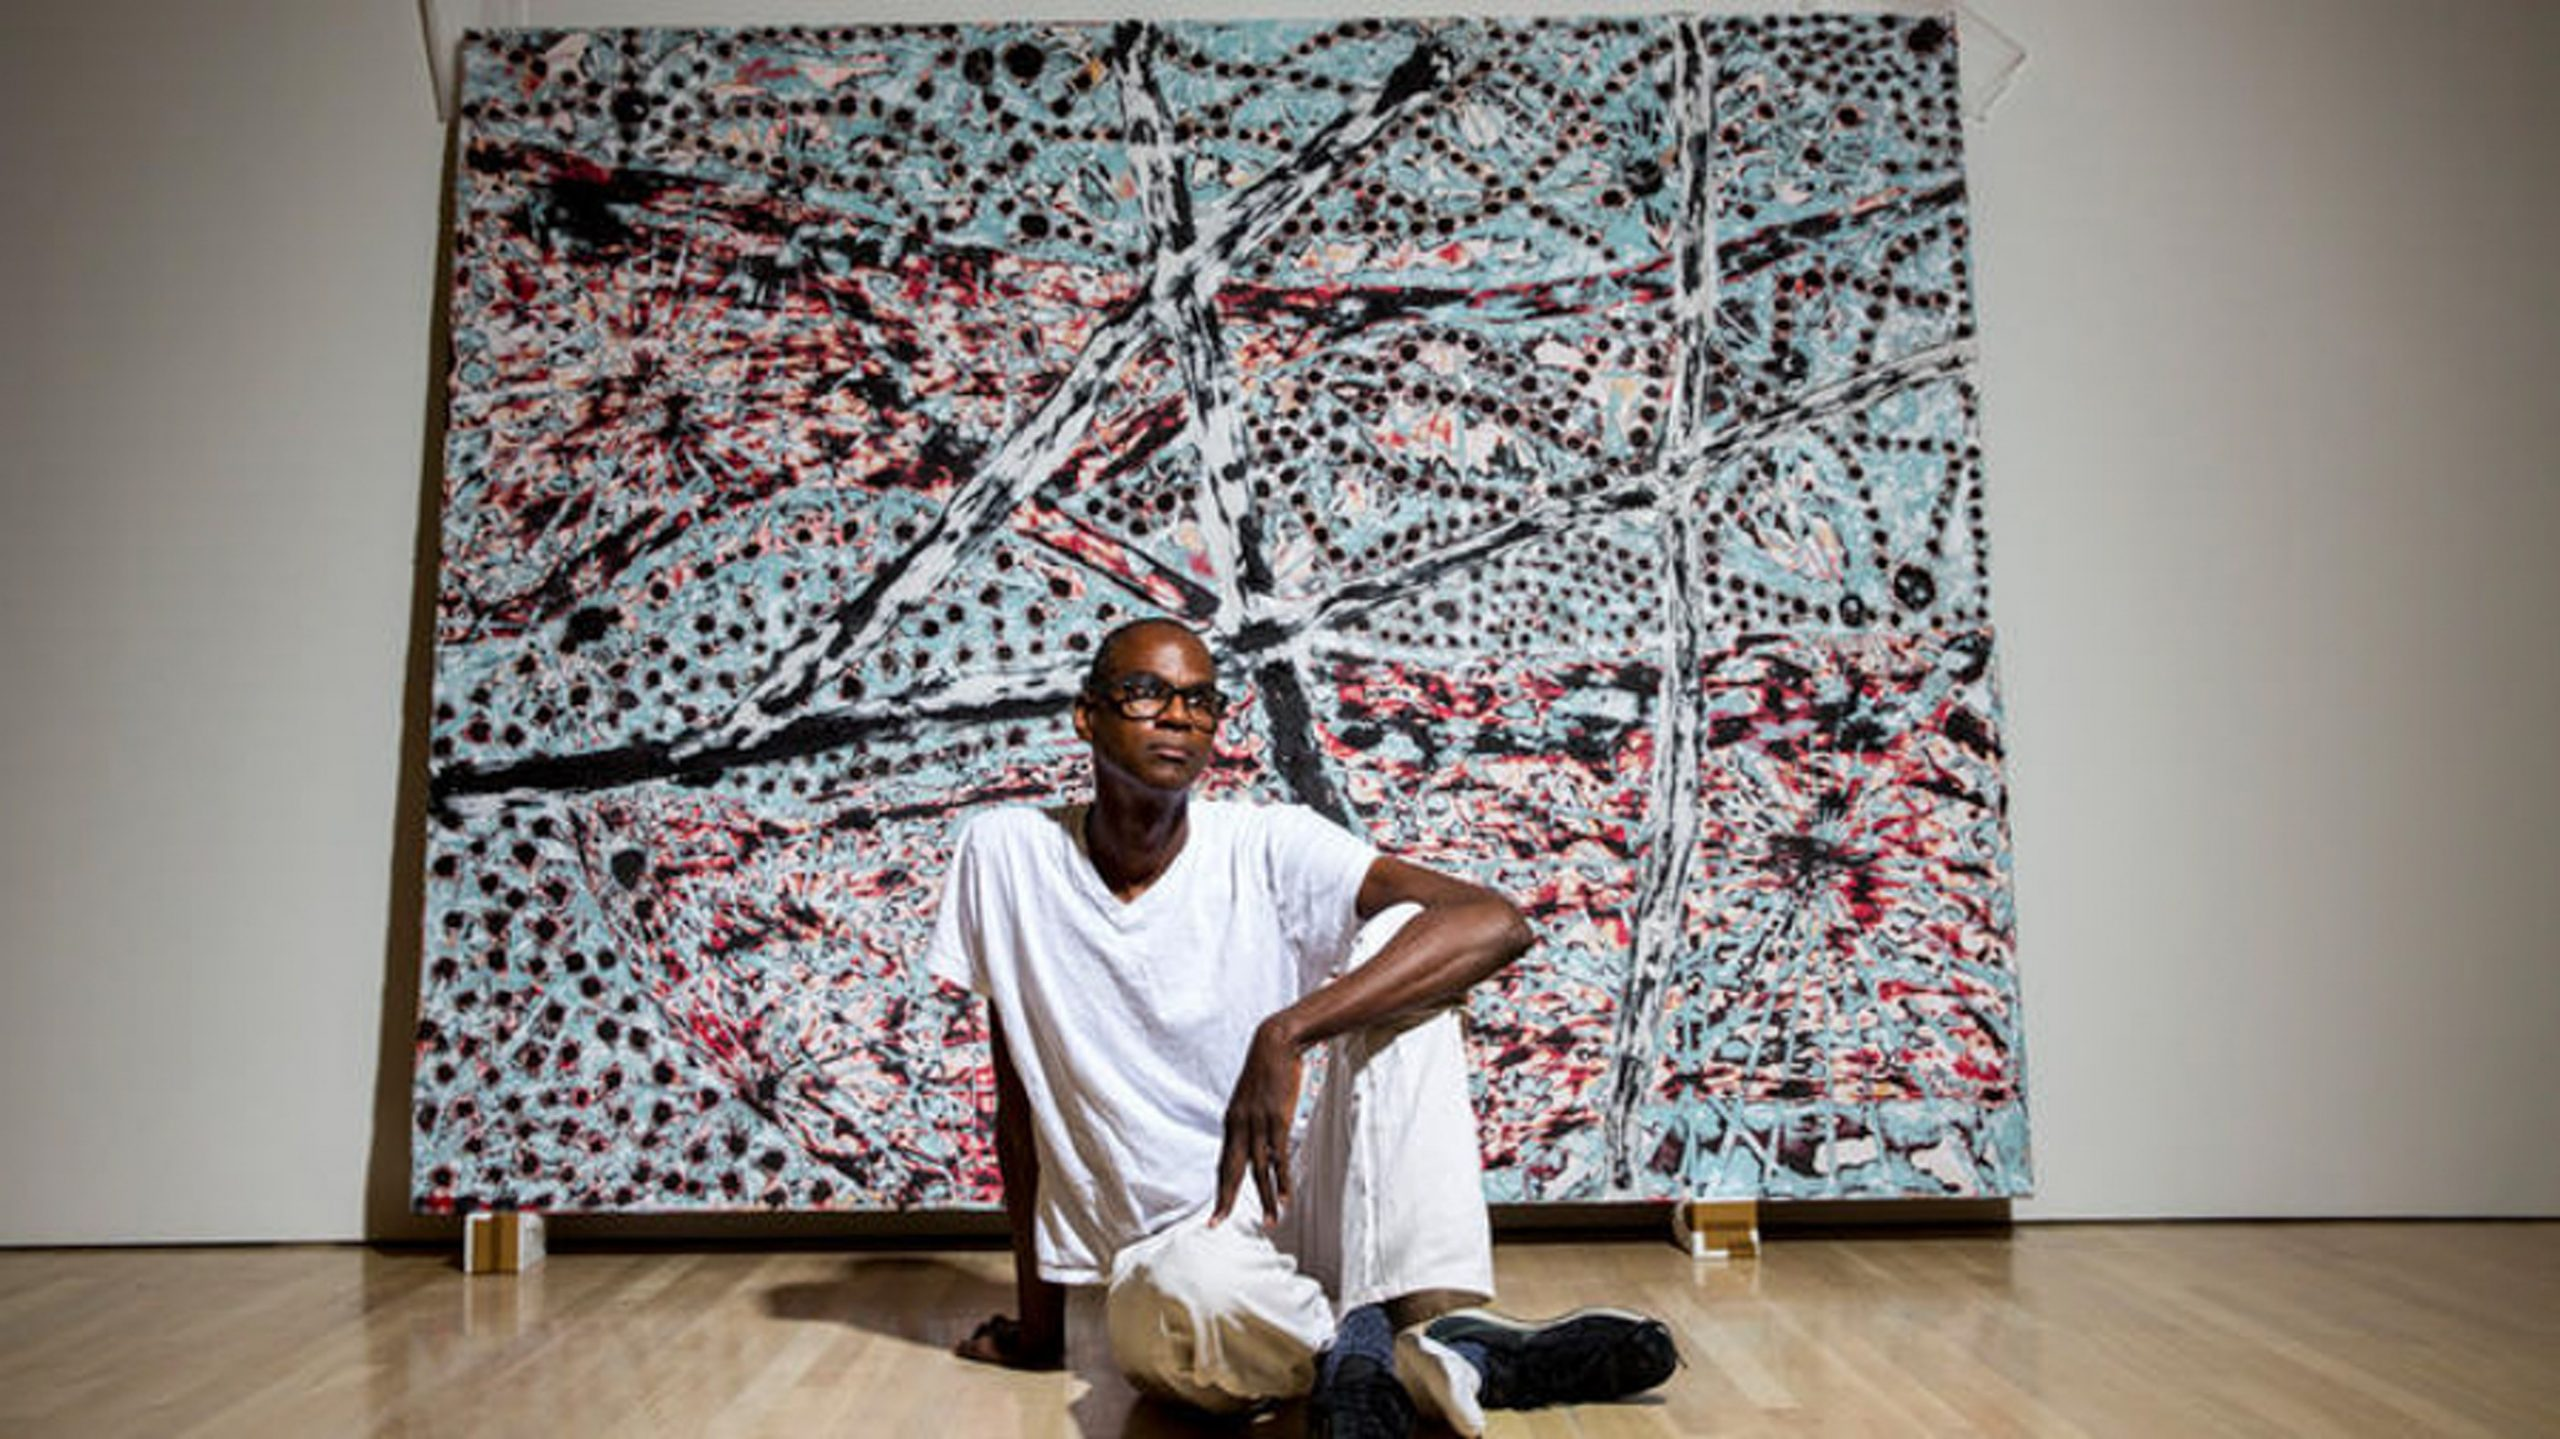 Los Angeles-born artist Mark Bradford in front of The Next Hot Line, 2015. (Jay L. Clendenin / Los Angeles Times)